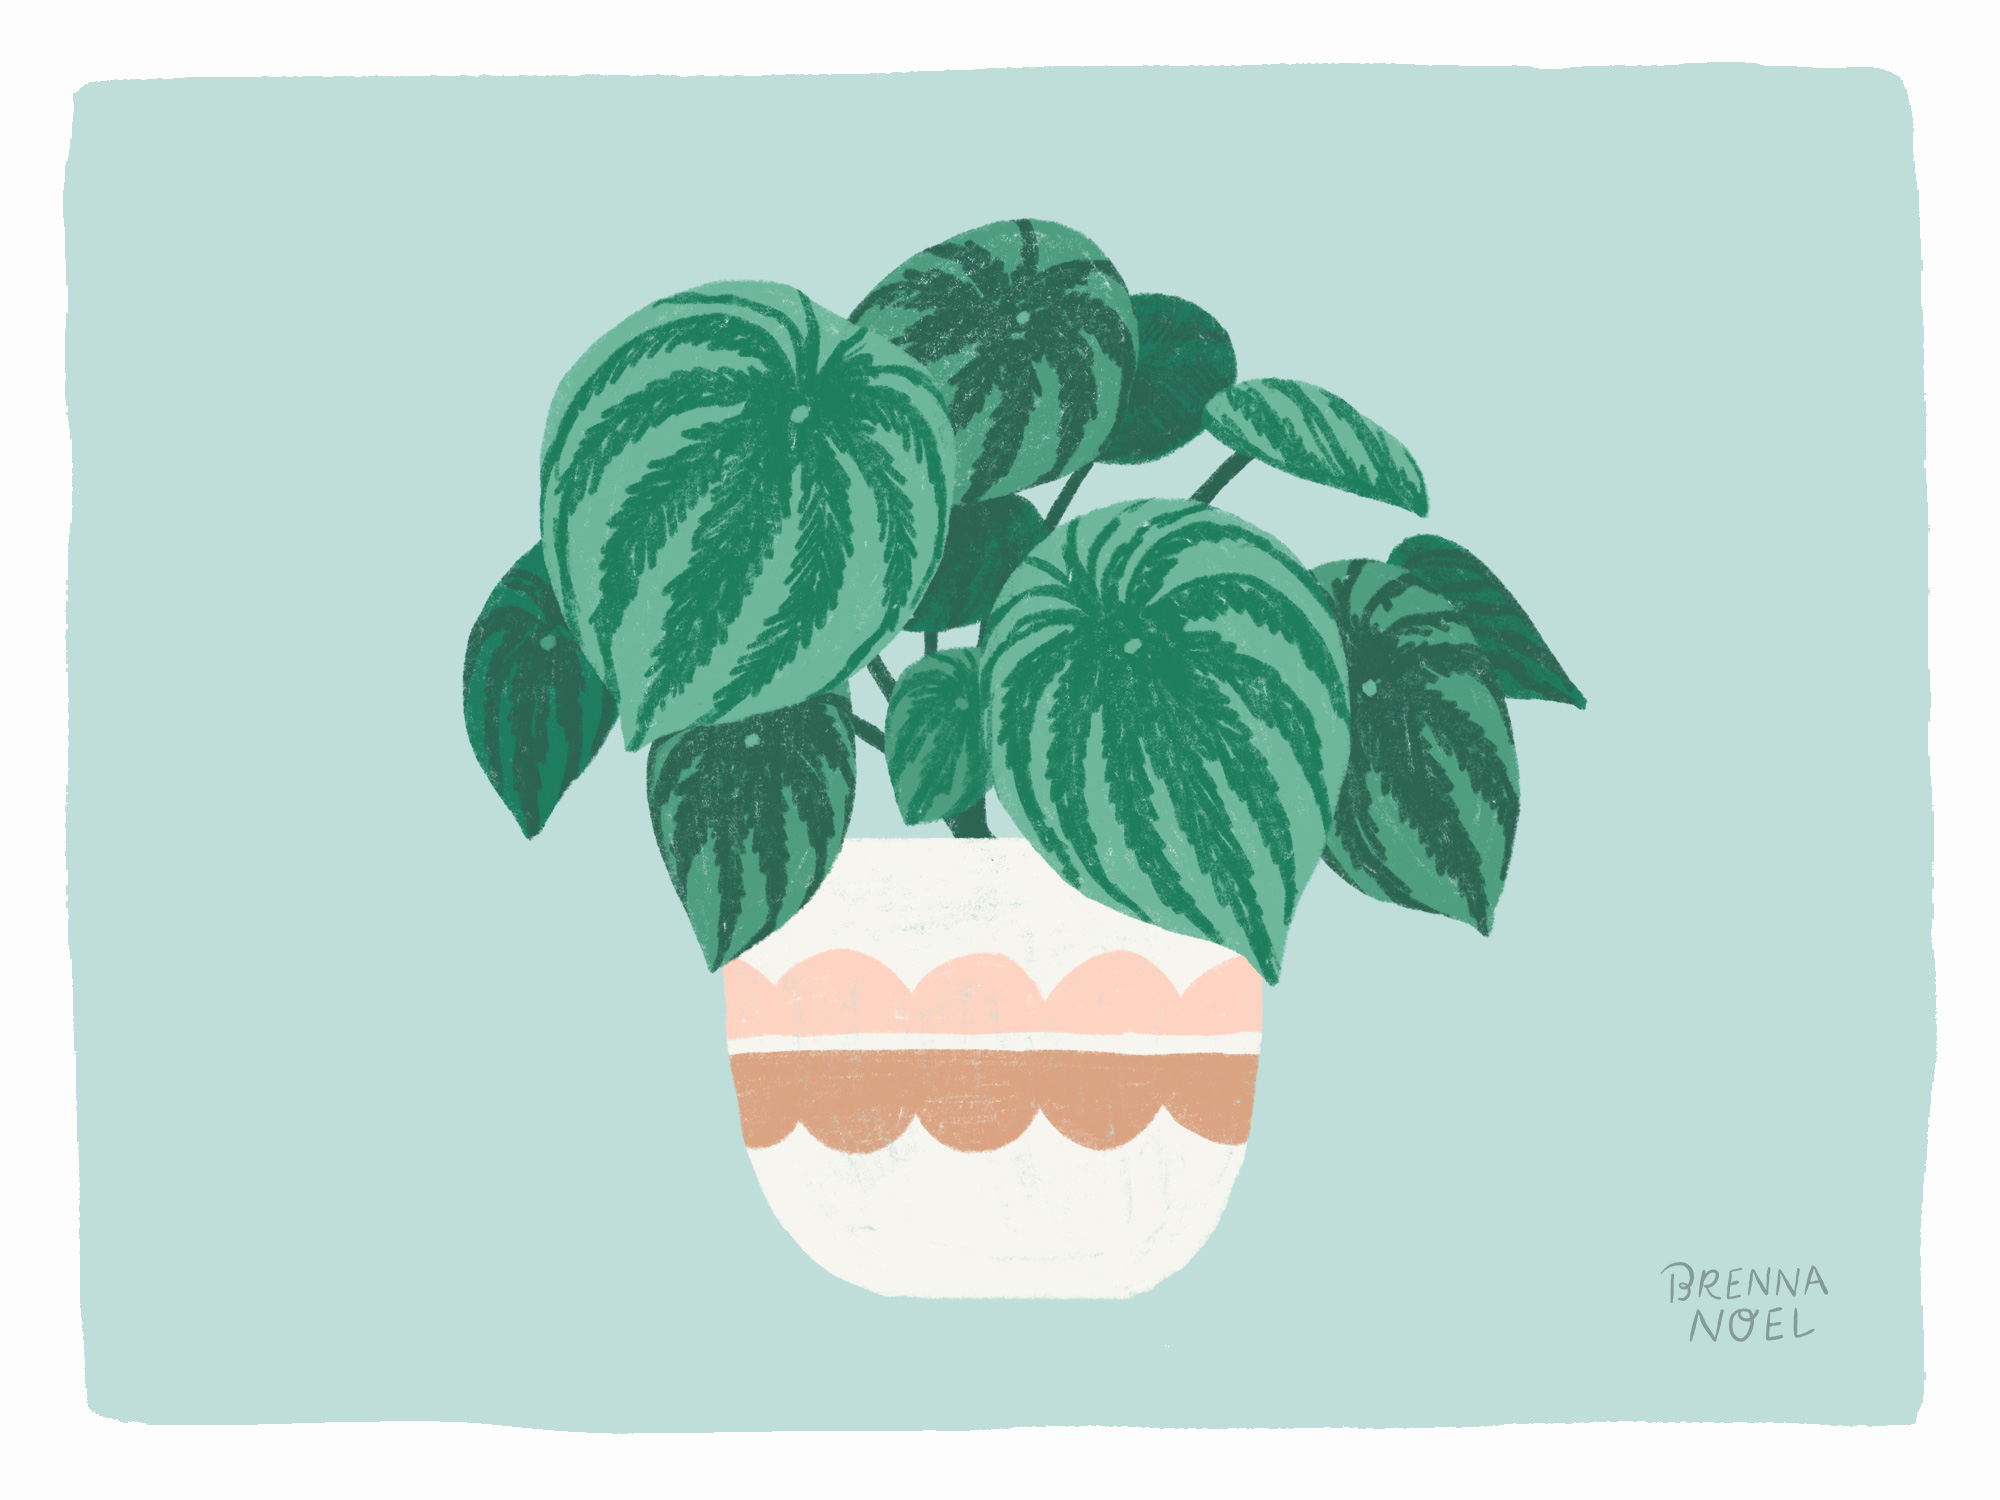 BN-Dribbble-Houseplant11.jpg